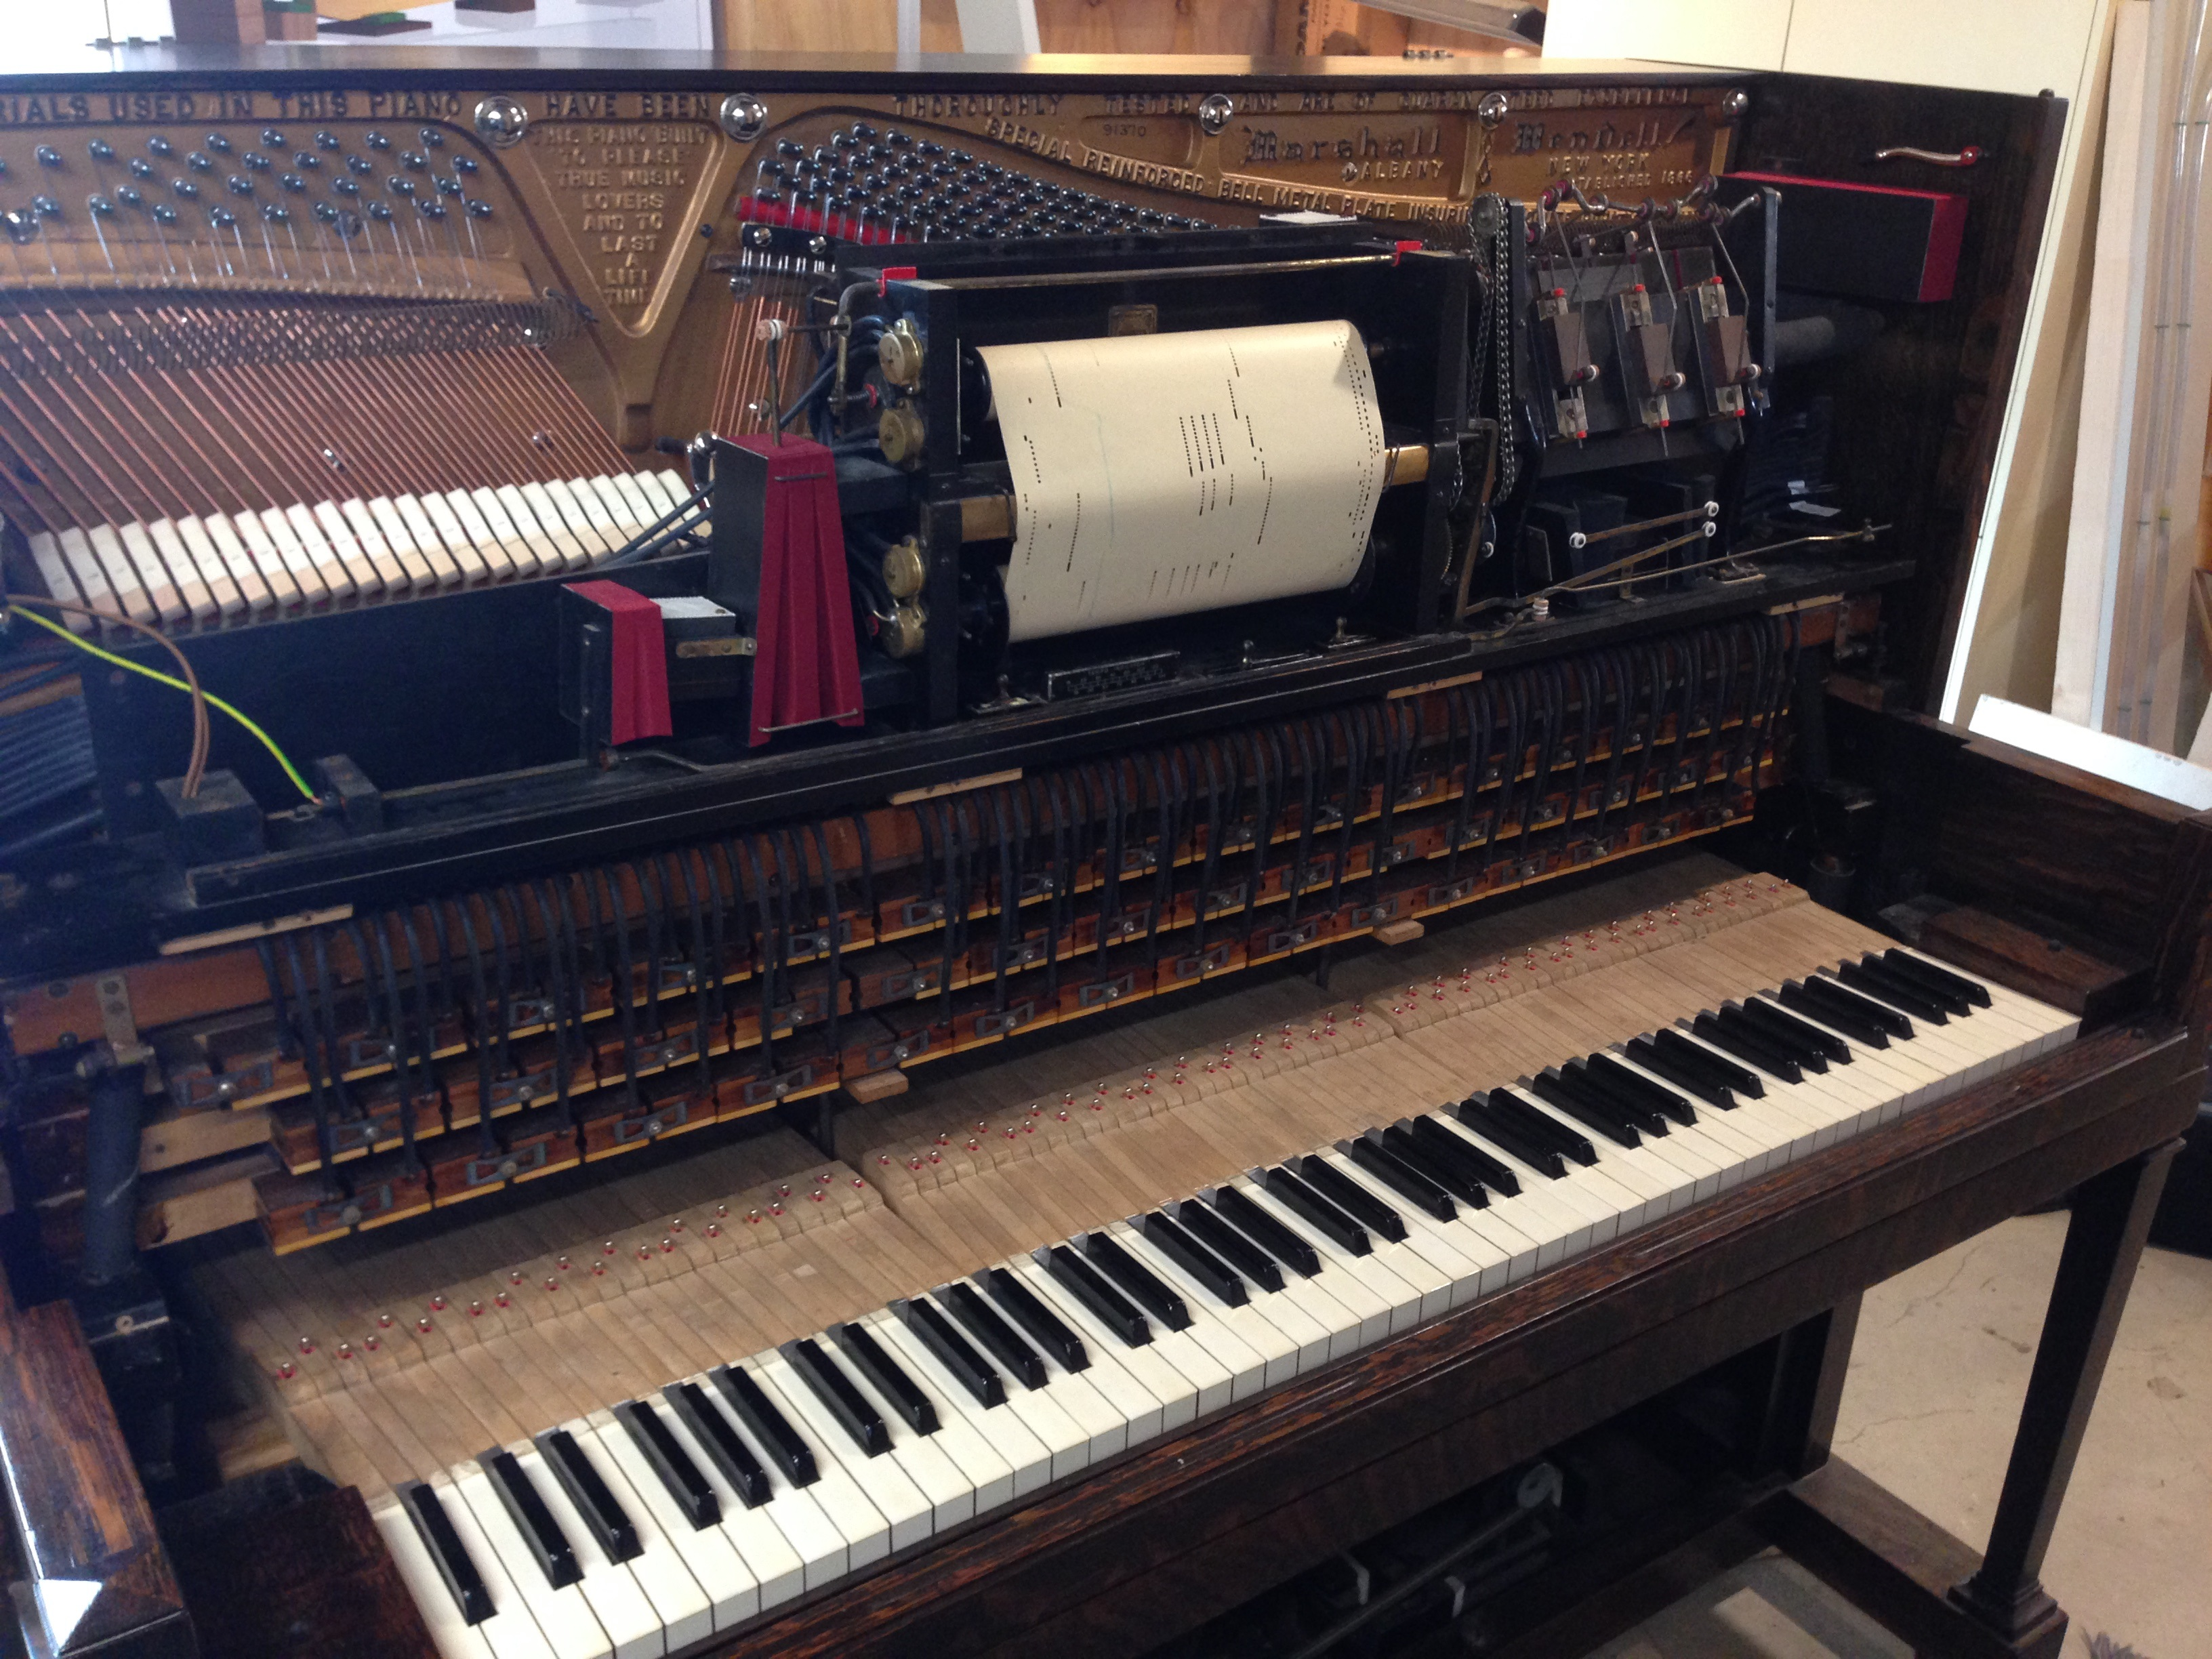 The upper part of the piano